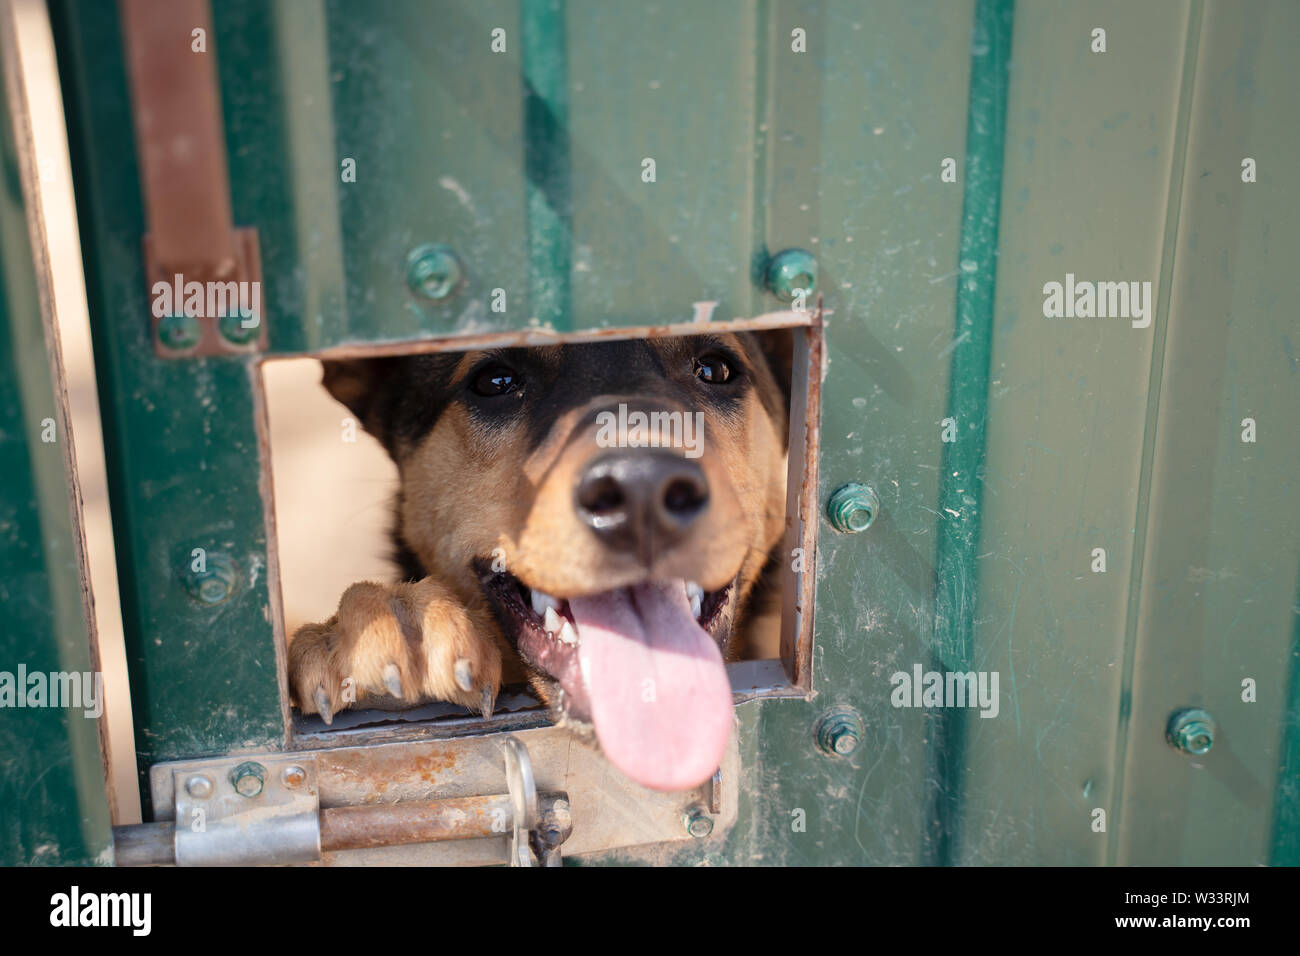 Photo of dog's face sticking out of window in fence in afternoon - Stock Image